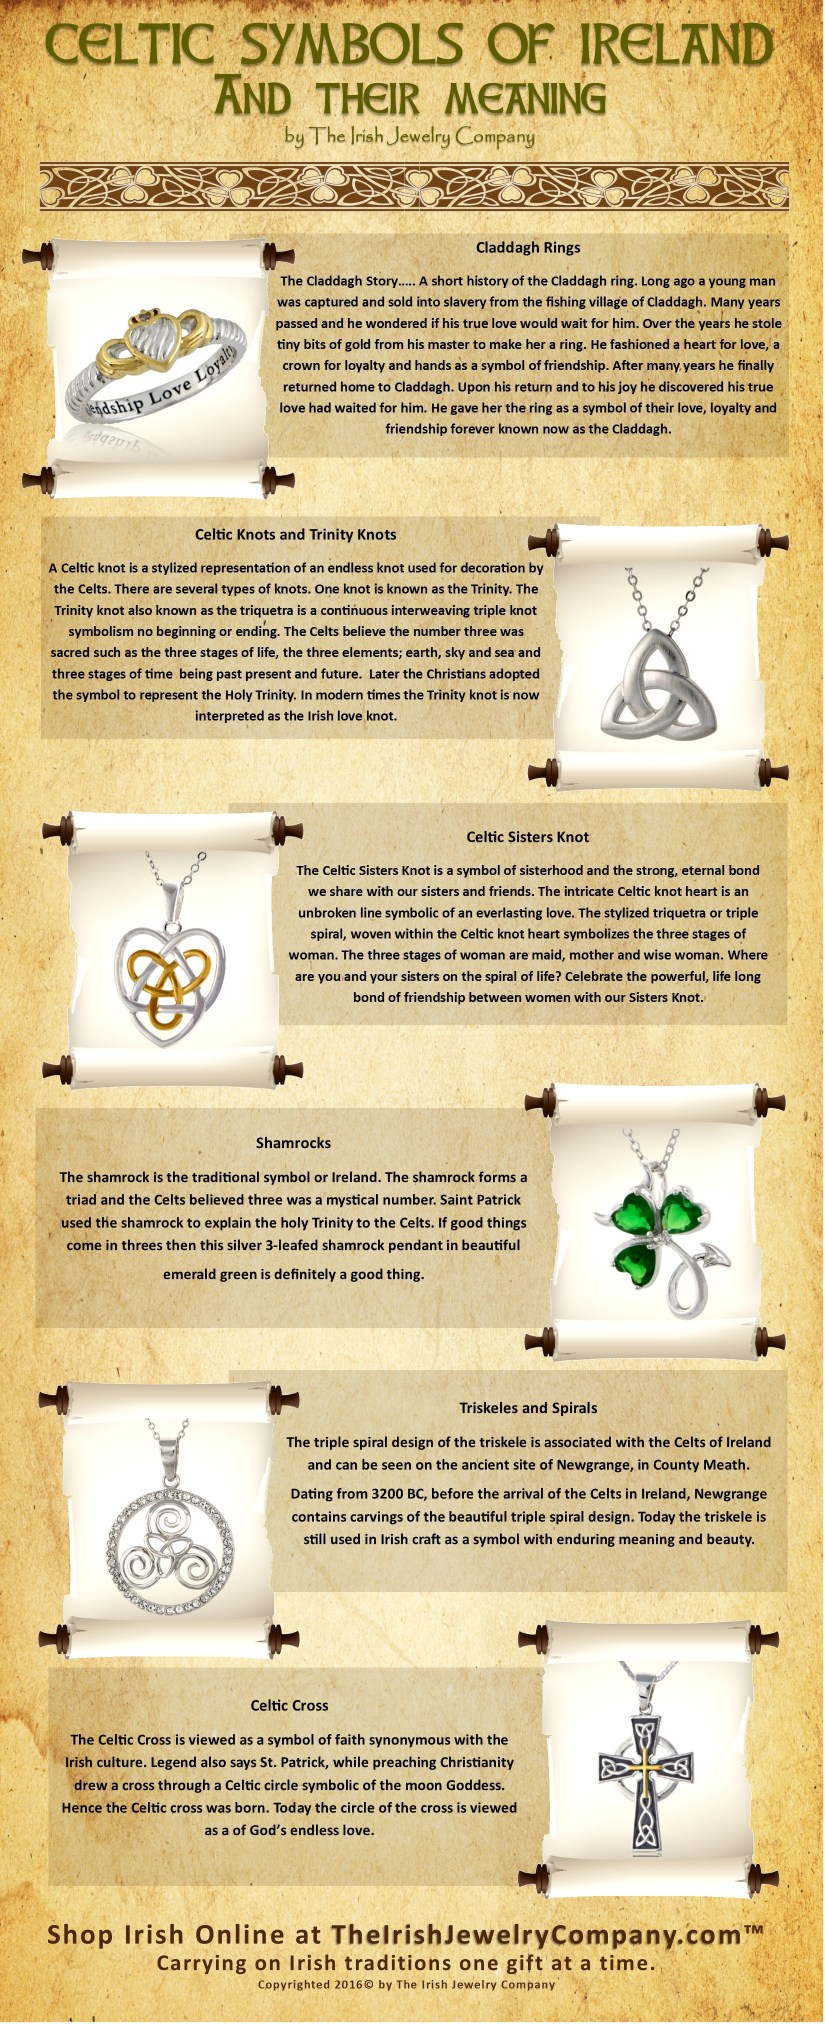 Celtic Symbols of Ireland.jpg